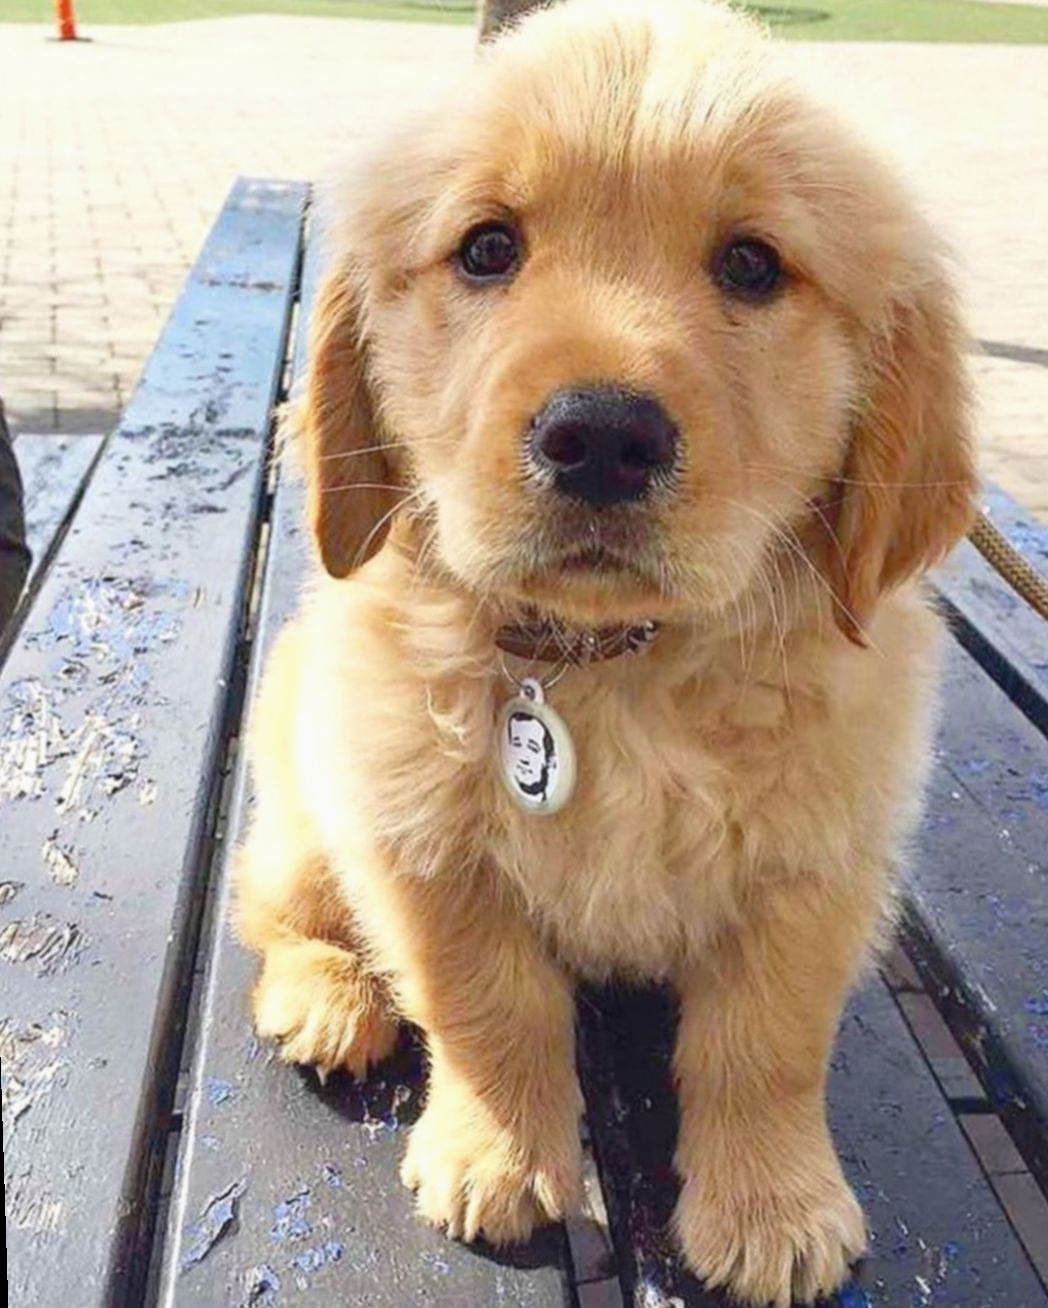 Pin By Olivia Wheeling On Pupperonis In 2020 Puppies Golden Retriever Dogs Golden Retriever